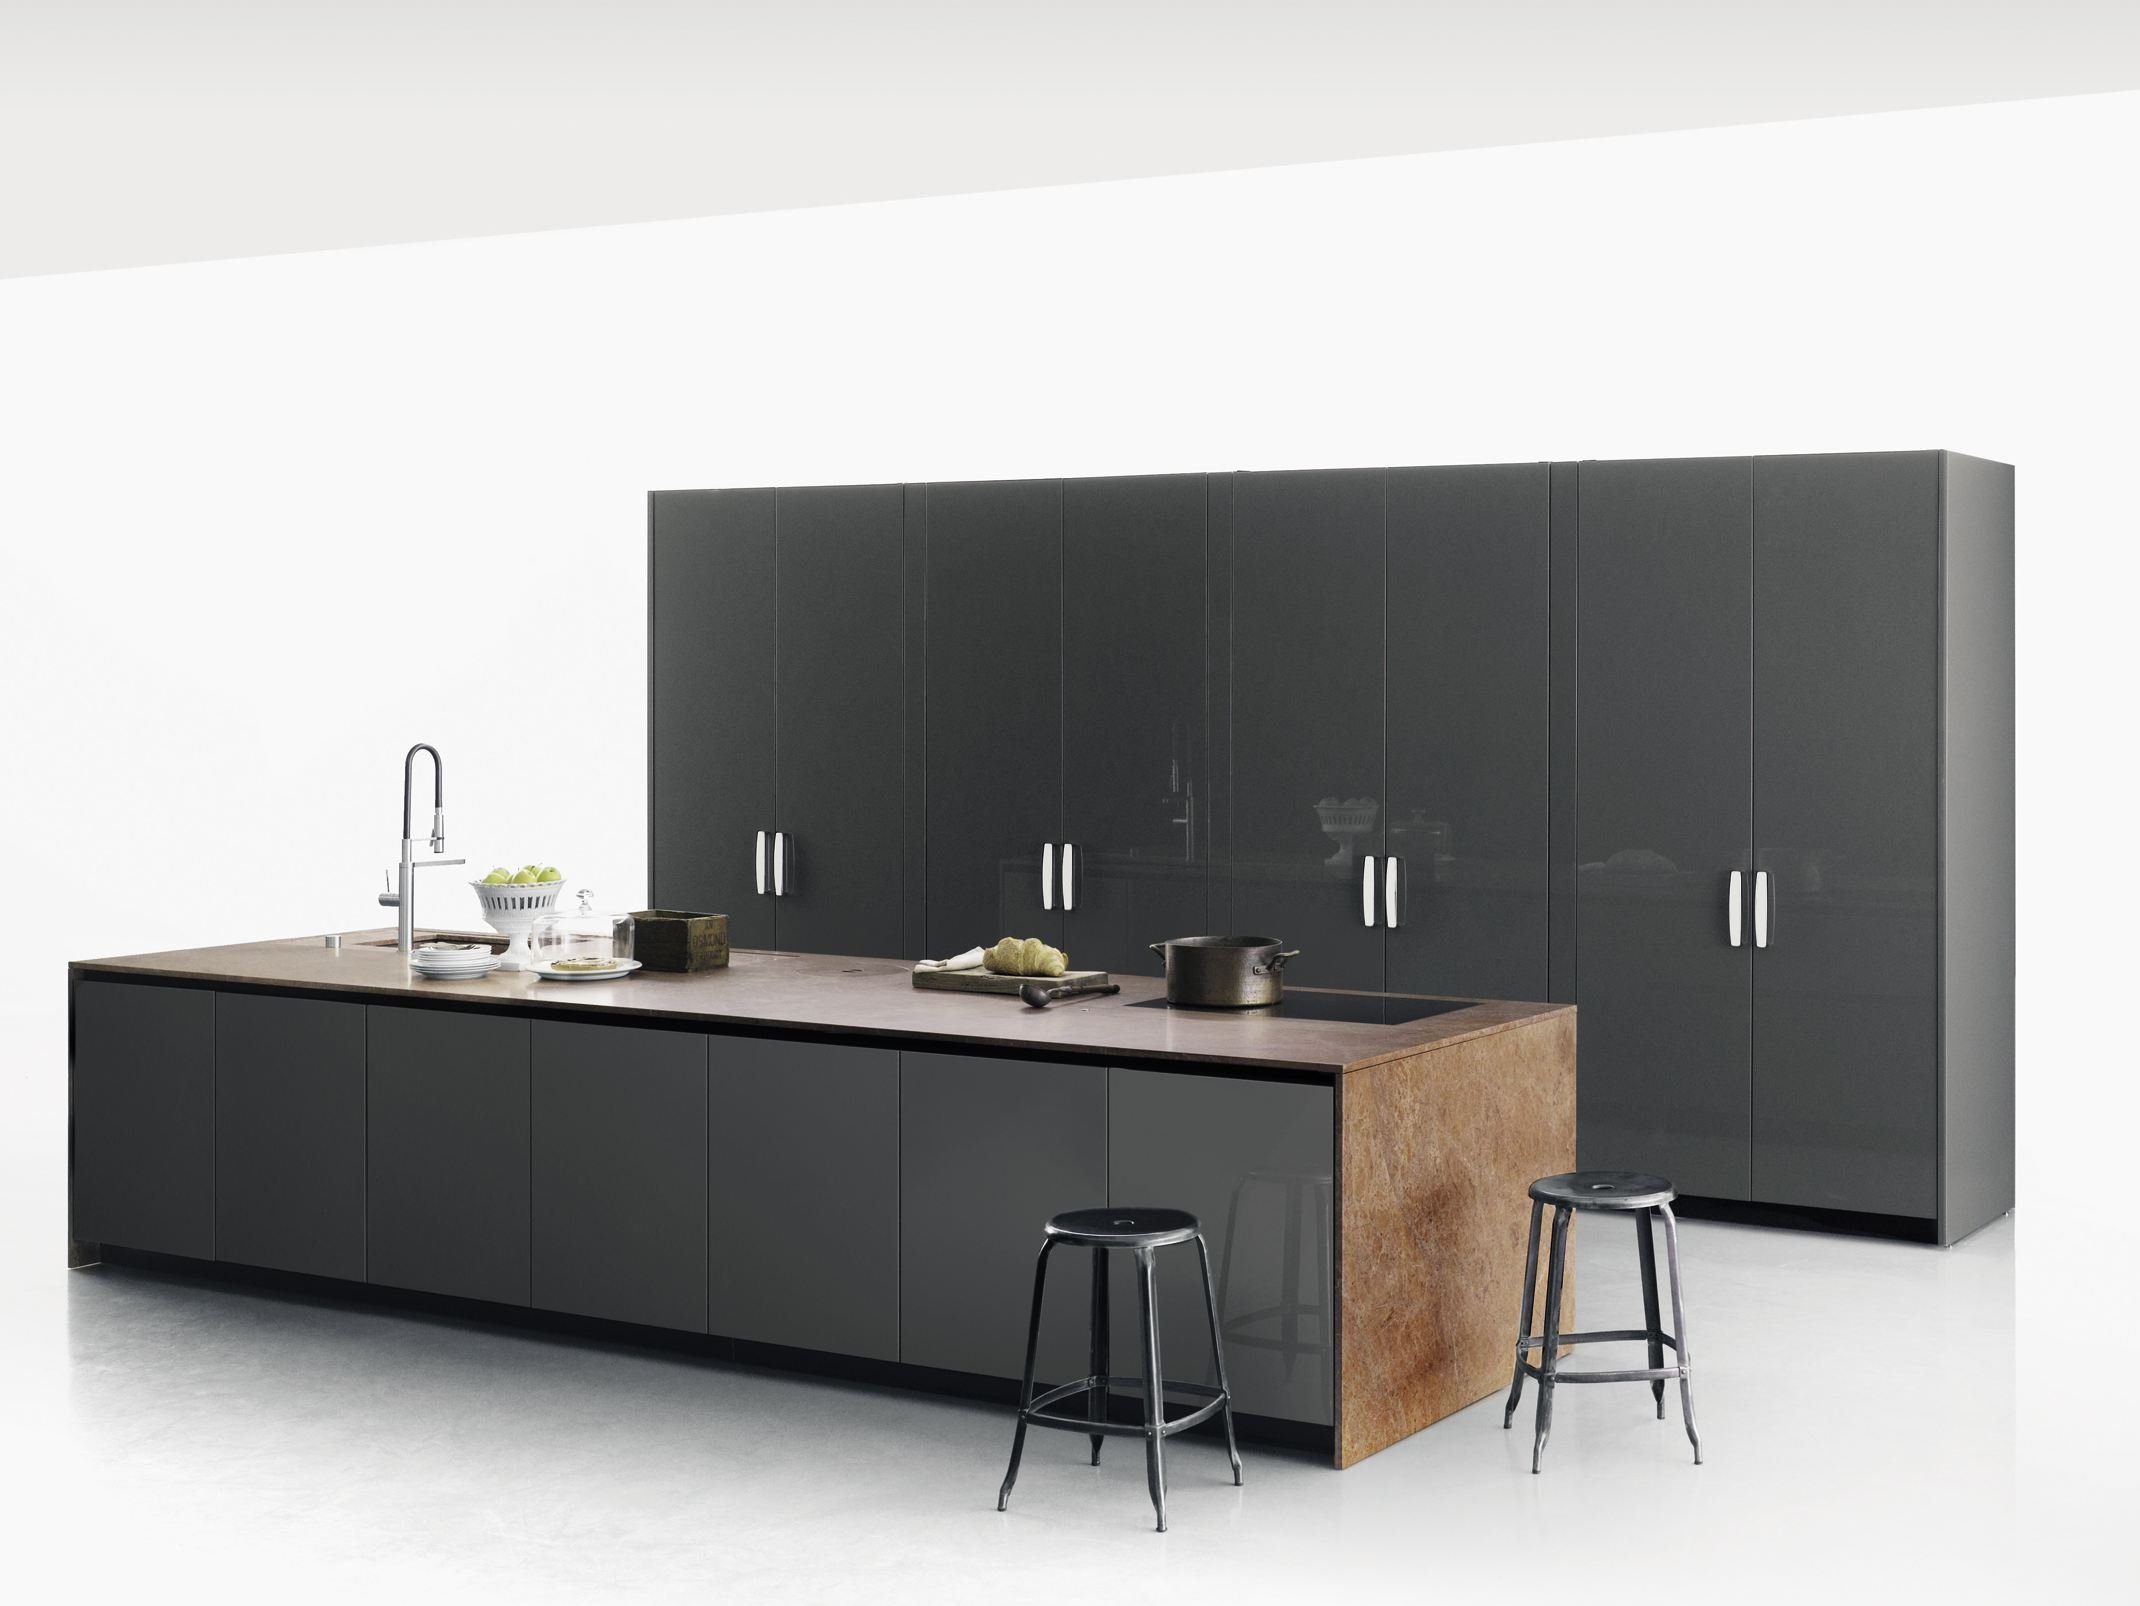 k che aus stein mit k cheninsel xila by boffi. Black Bedroom Furniture Sets. Home Design Ideas